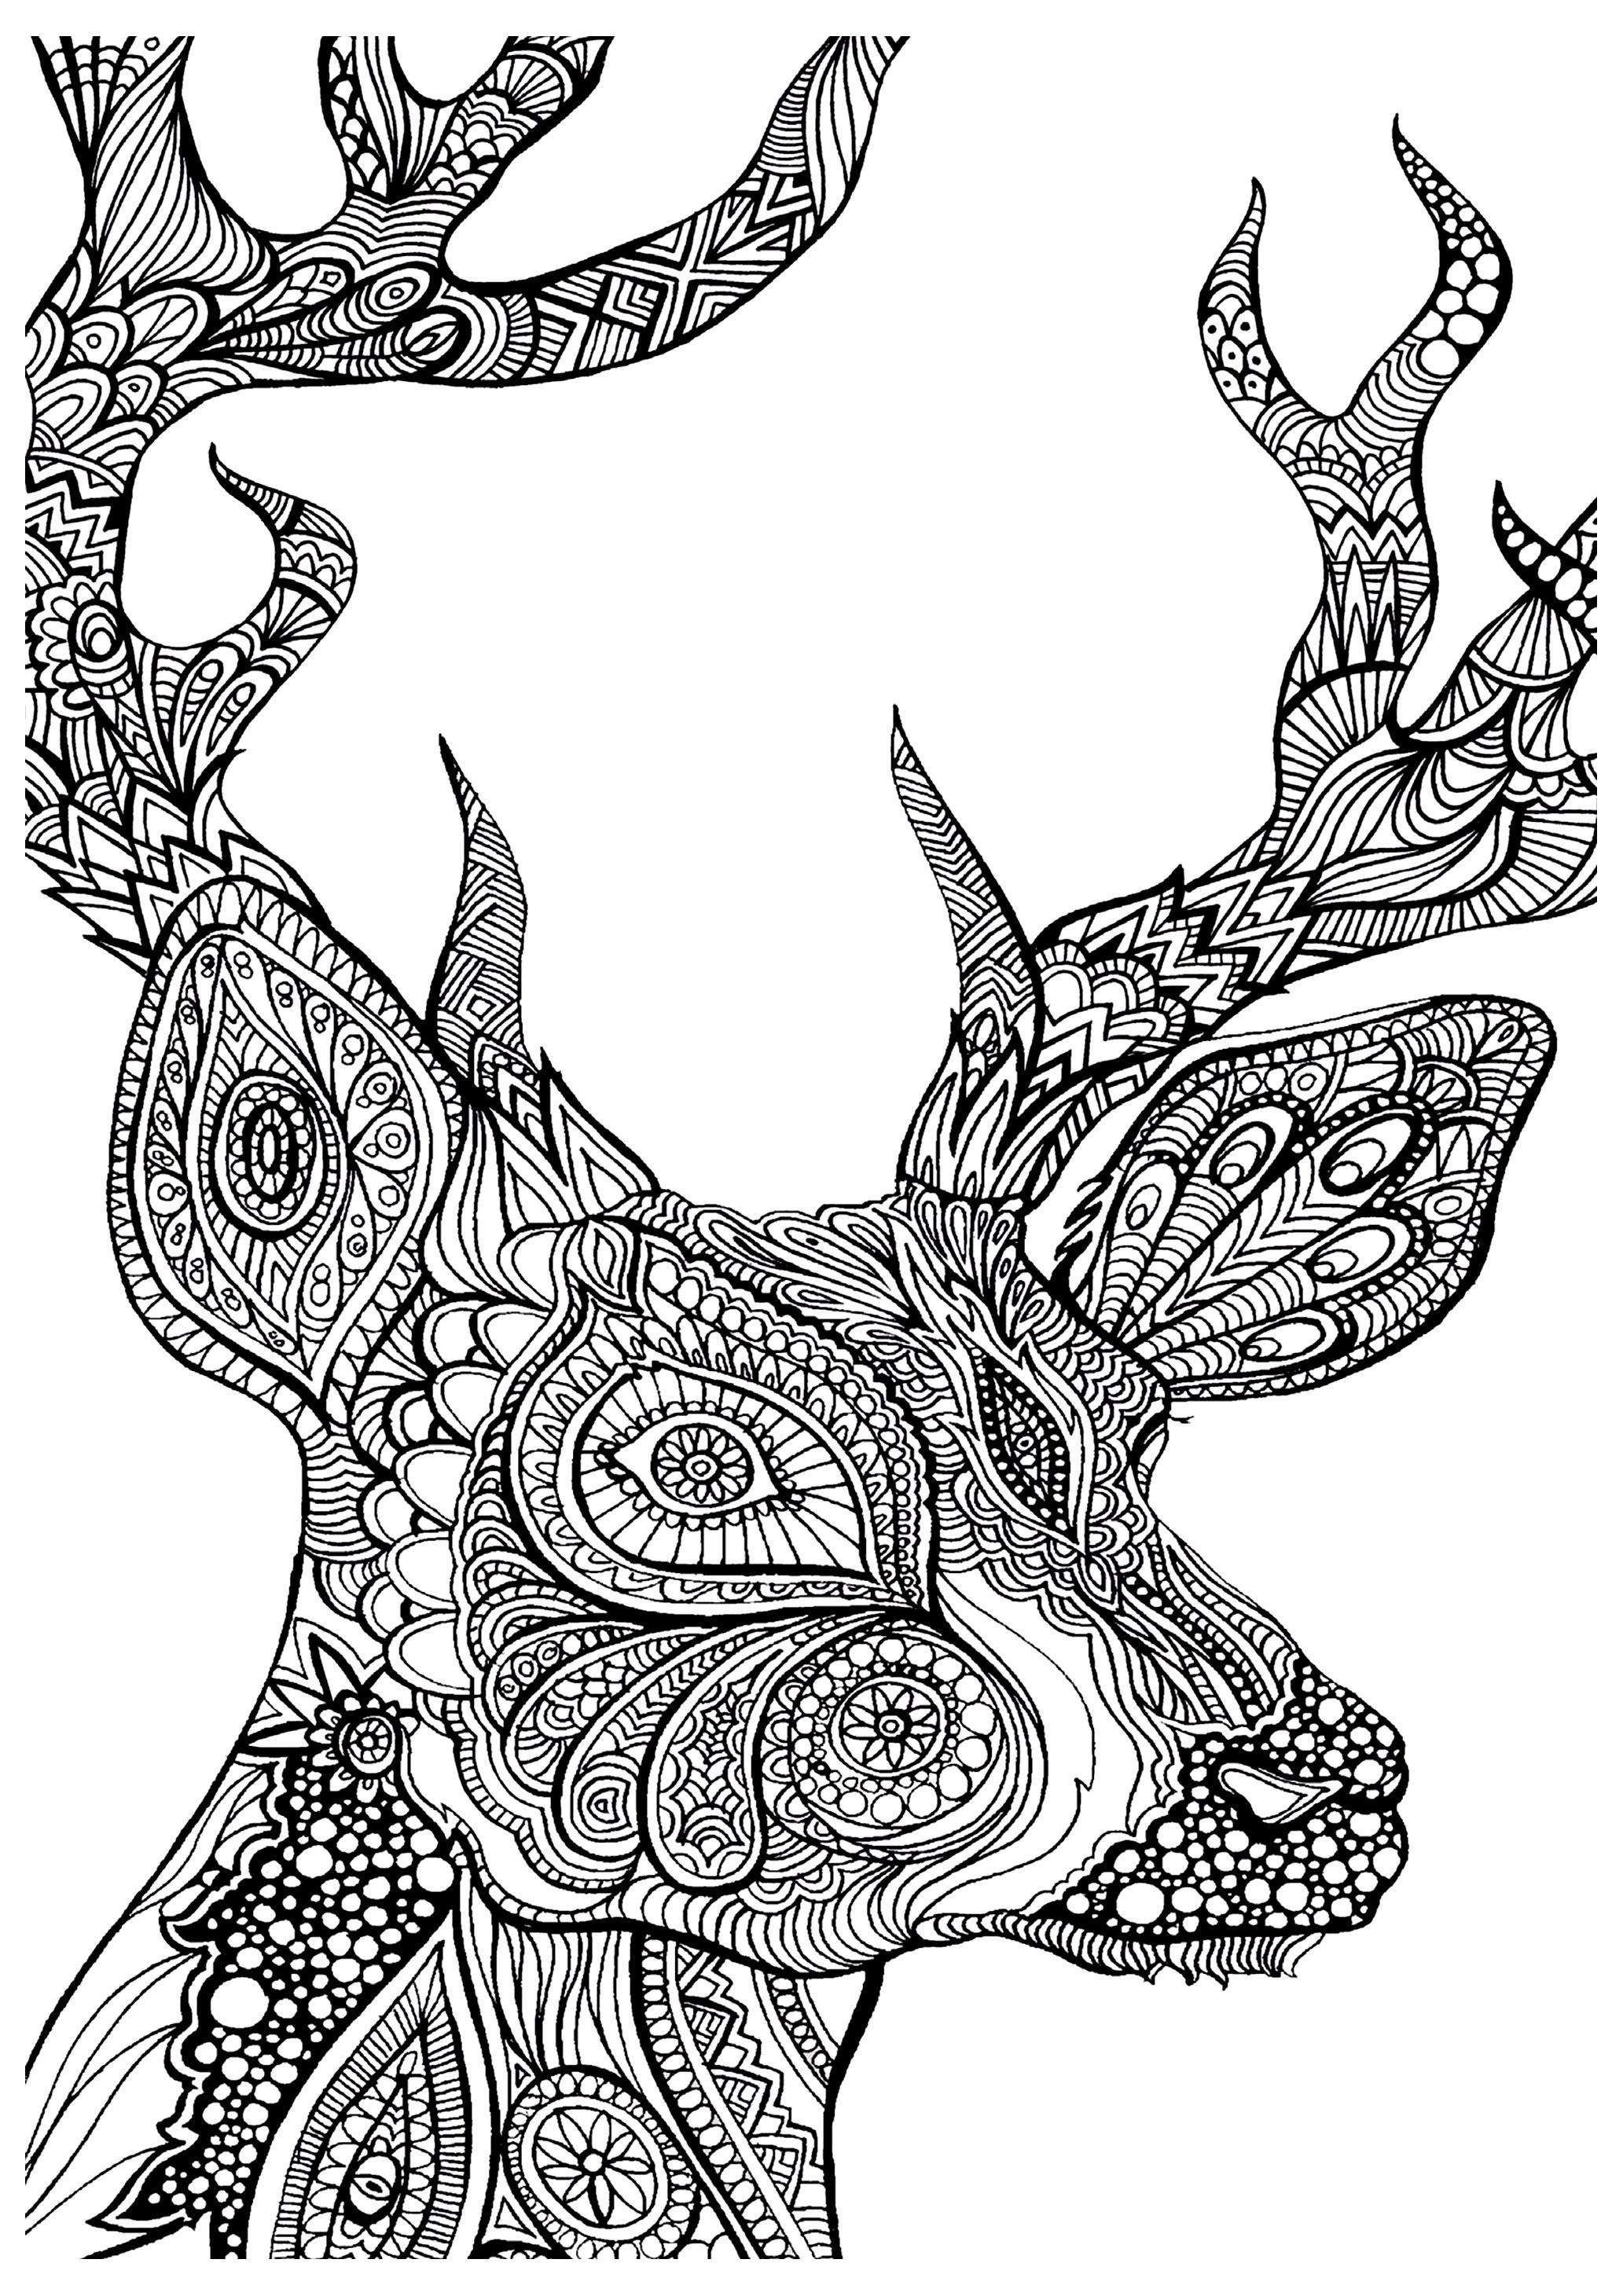 Free coloring pages for young adults - Free Coloring Pages Printables